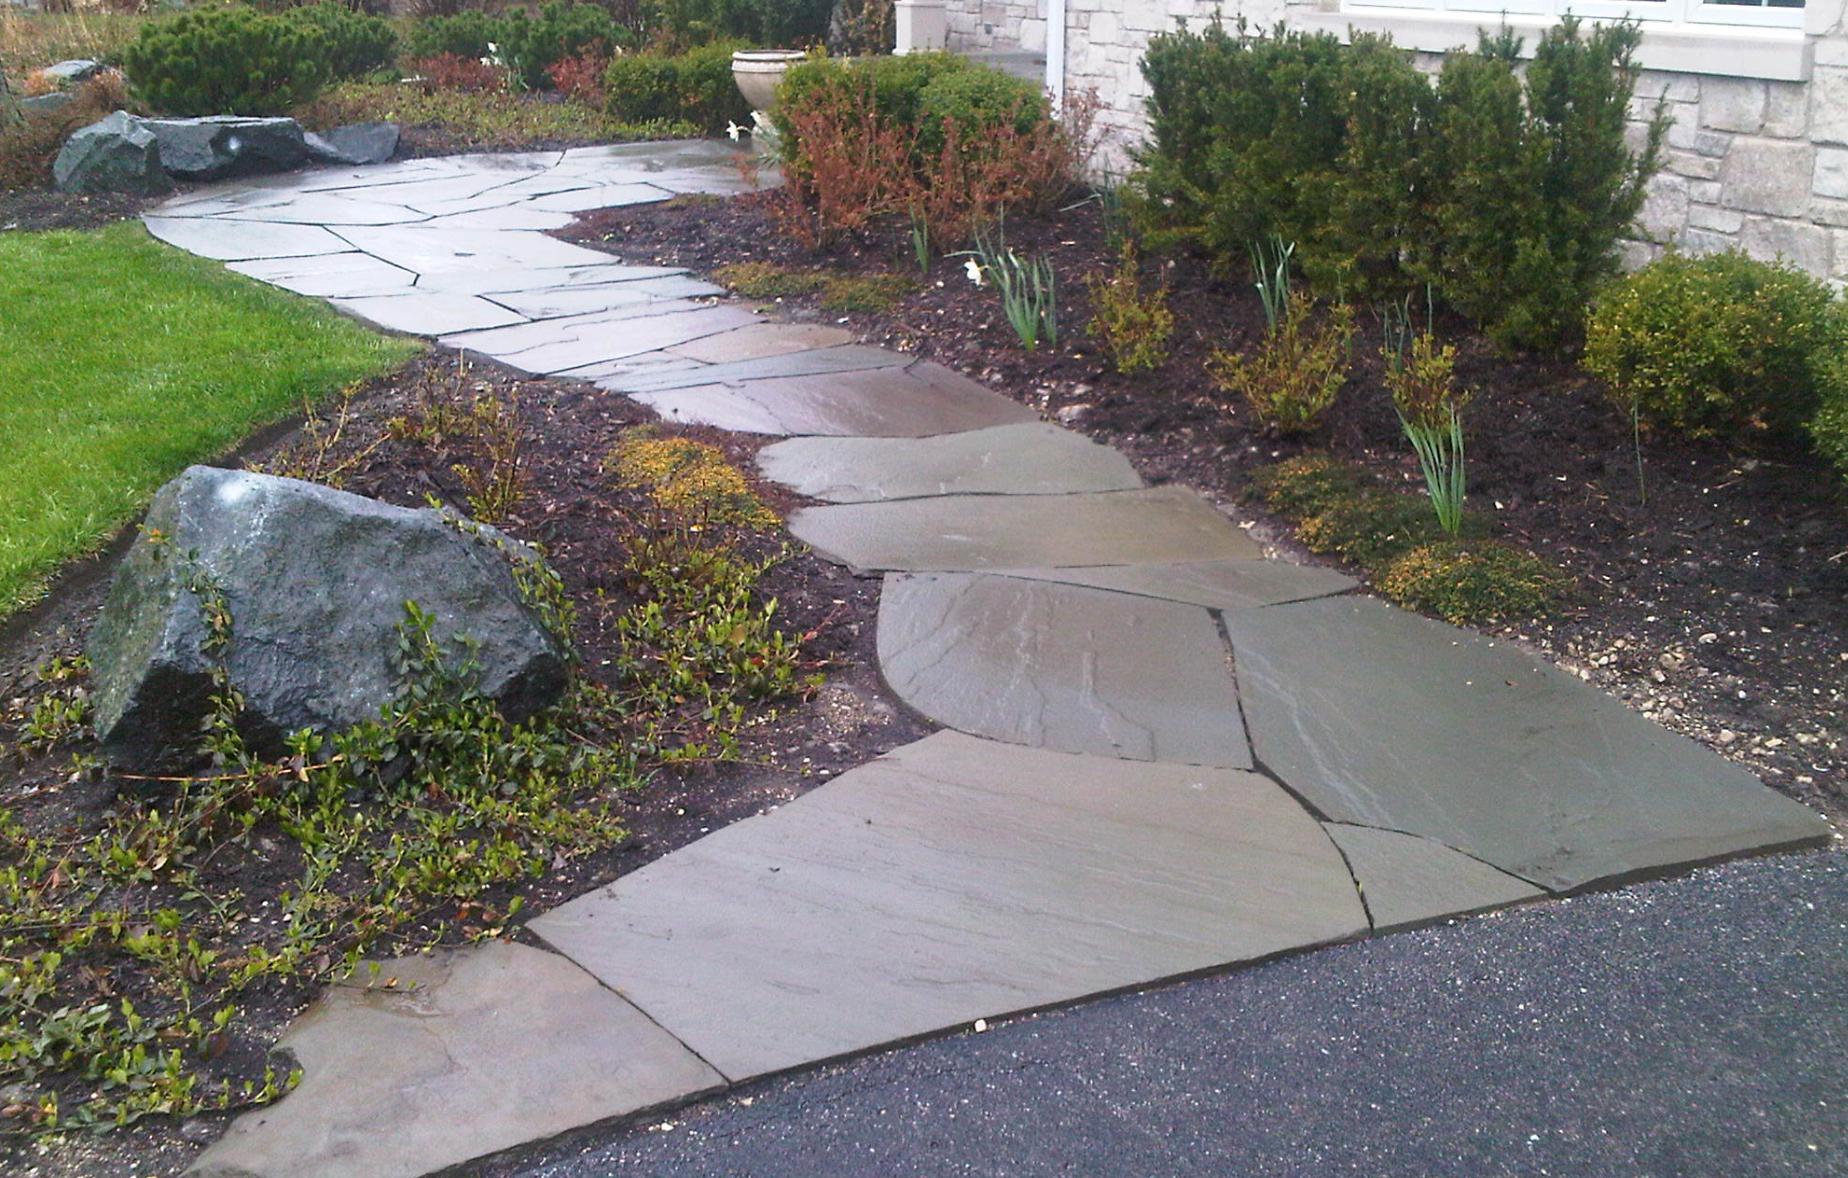 Unilock contractor landscape design and other landscaping services in Nortbrook, Glenview, Buffalo Grove, IL